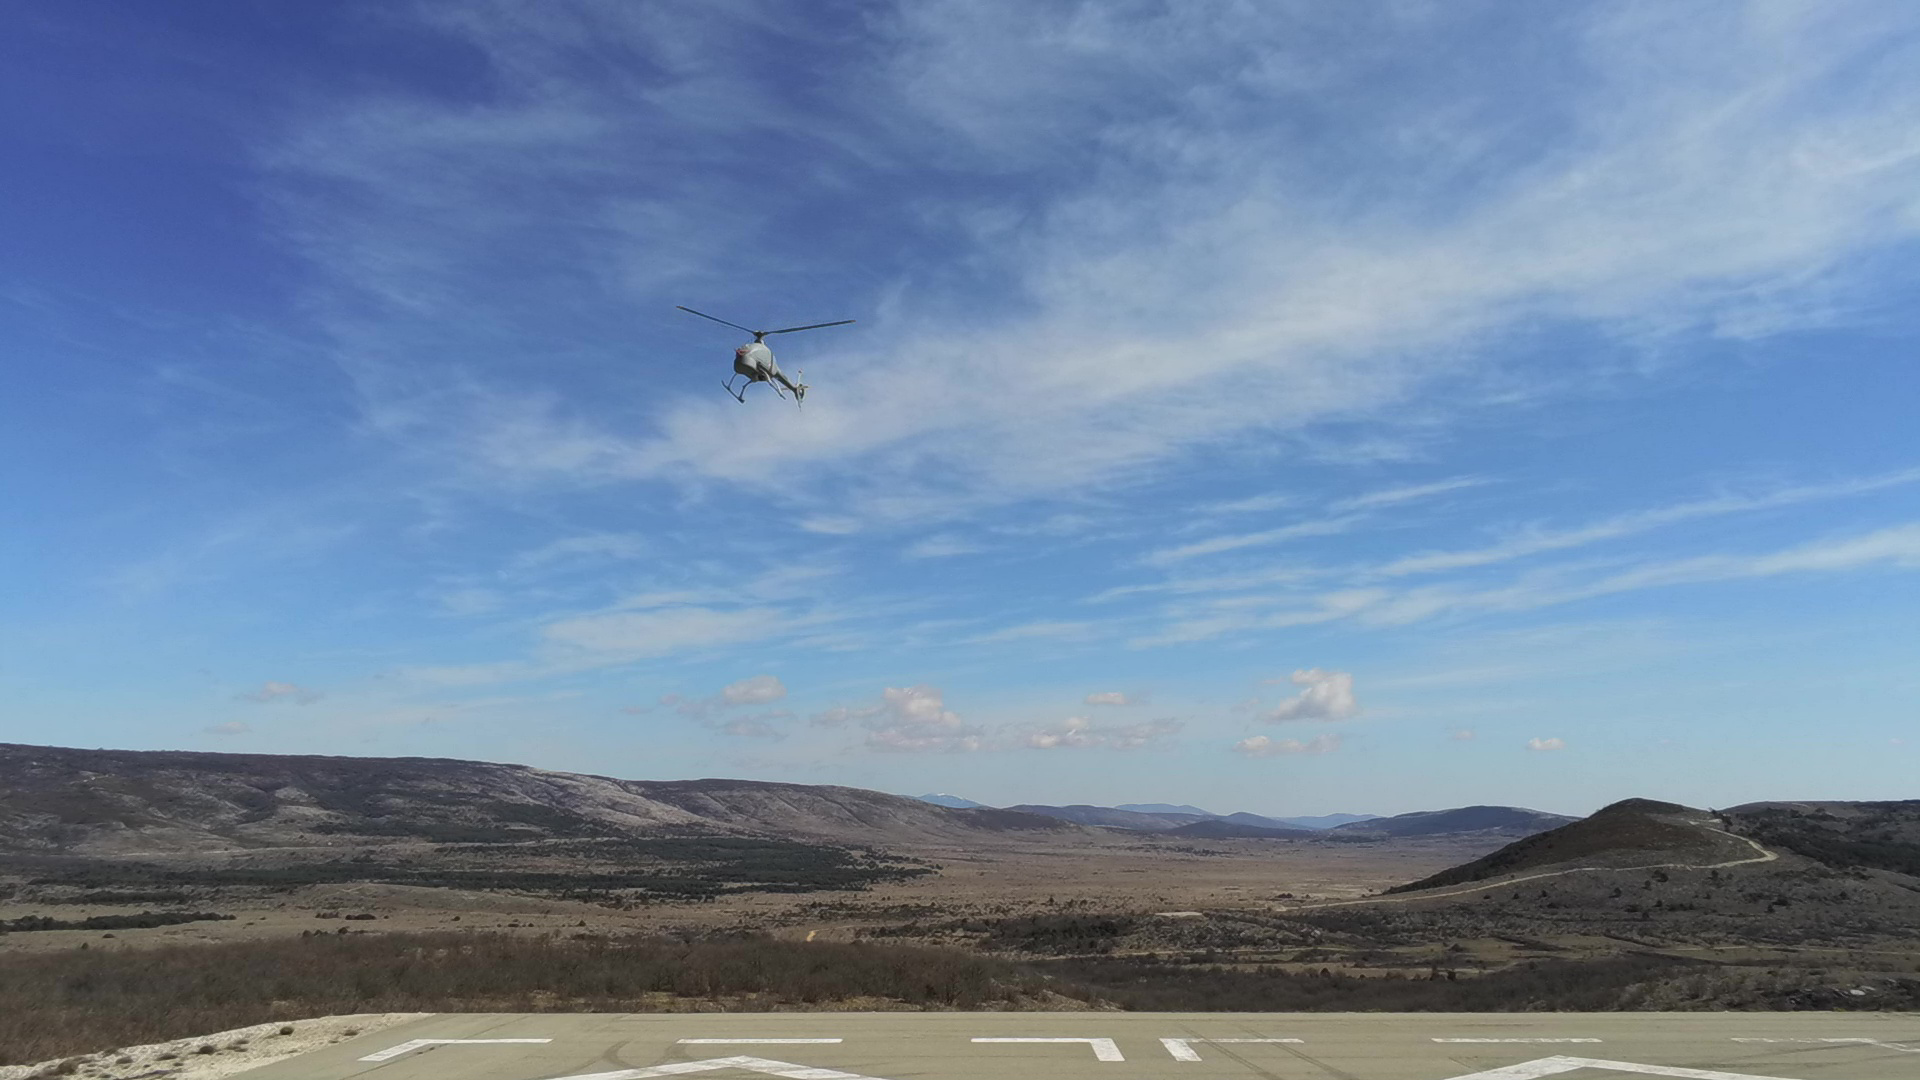 The Airbus VSR700 vertical takeoff/landing unmanned aerial vehicle is shown in the air during flight testing